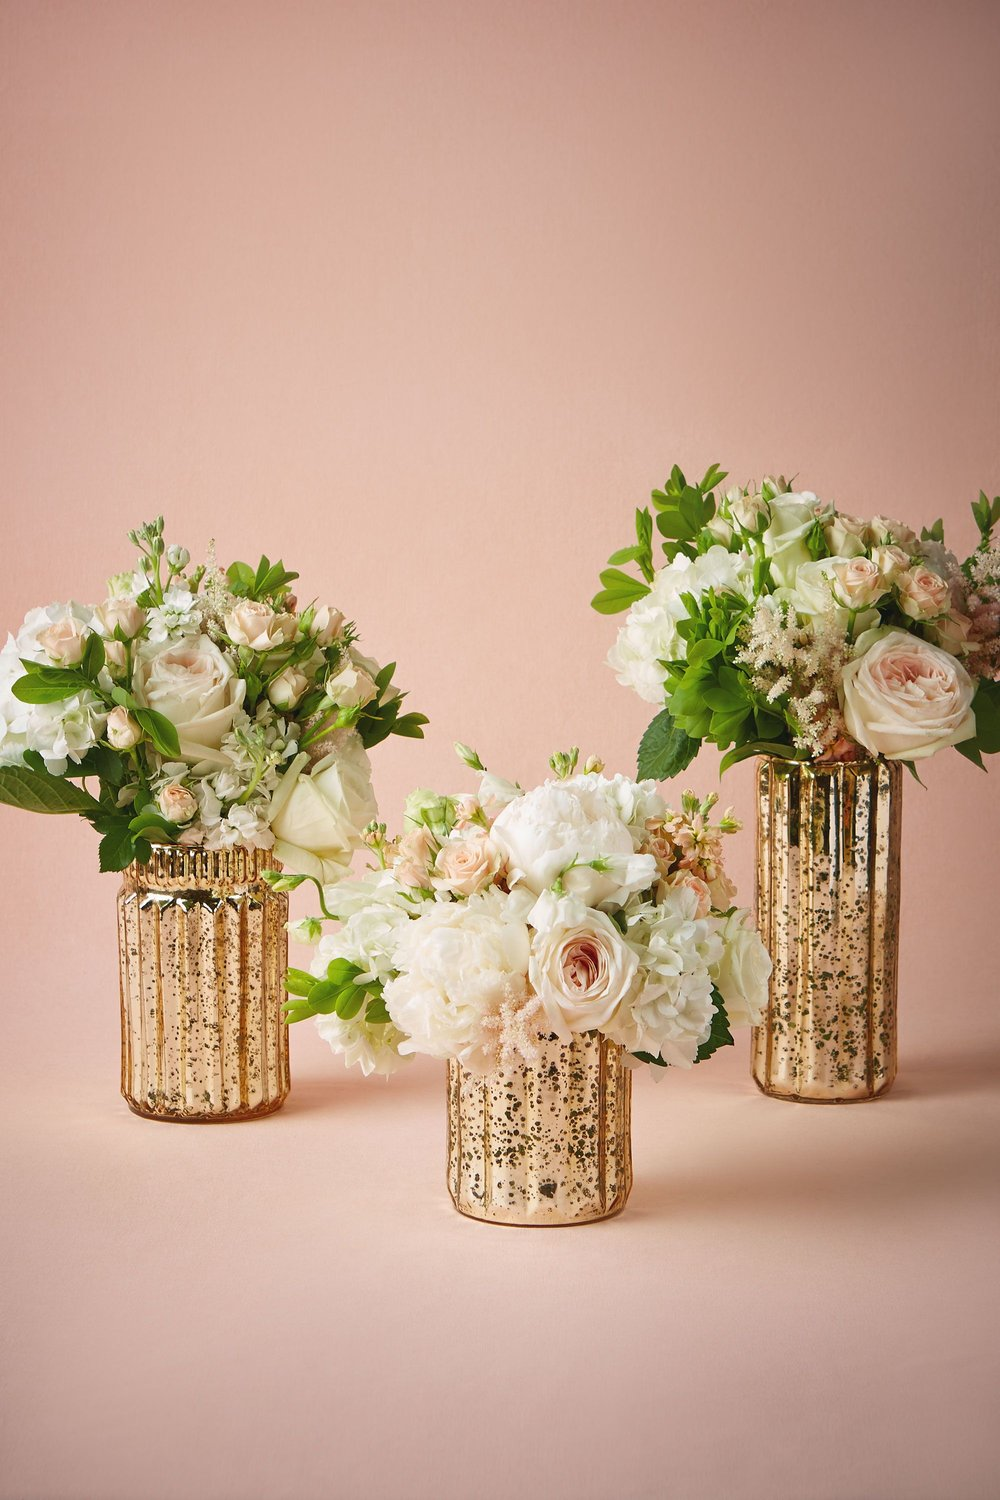 DIY CENTERPIECES ON A BUDGET